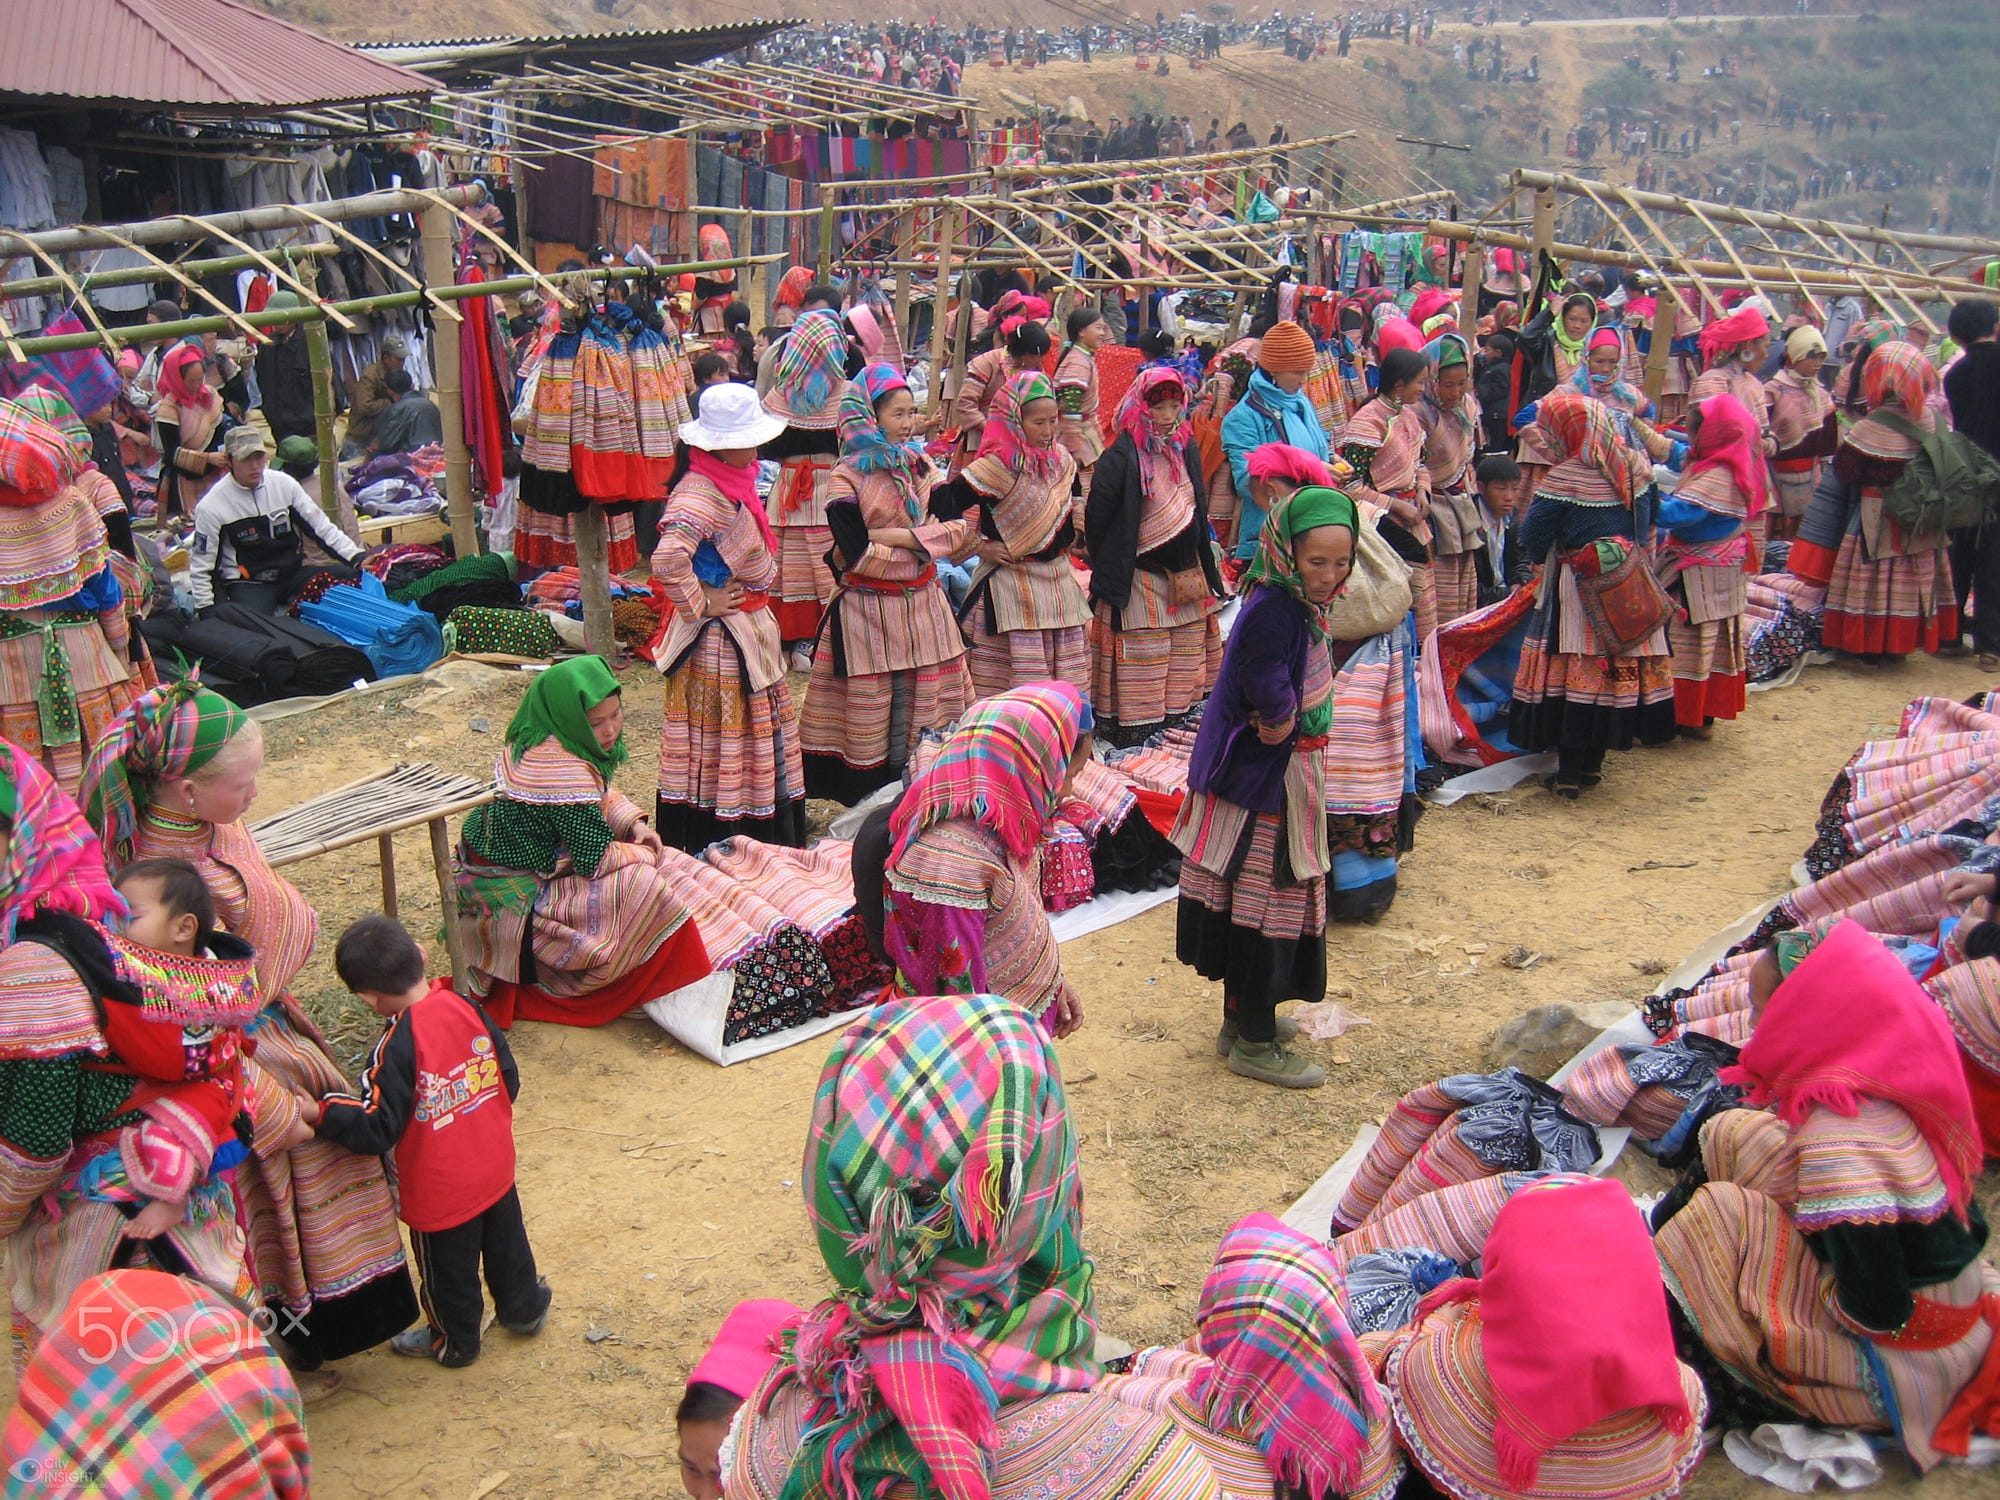 Image sourced from 500px. The vibe at the Sapa Markets.